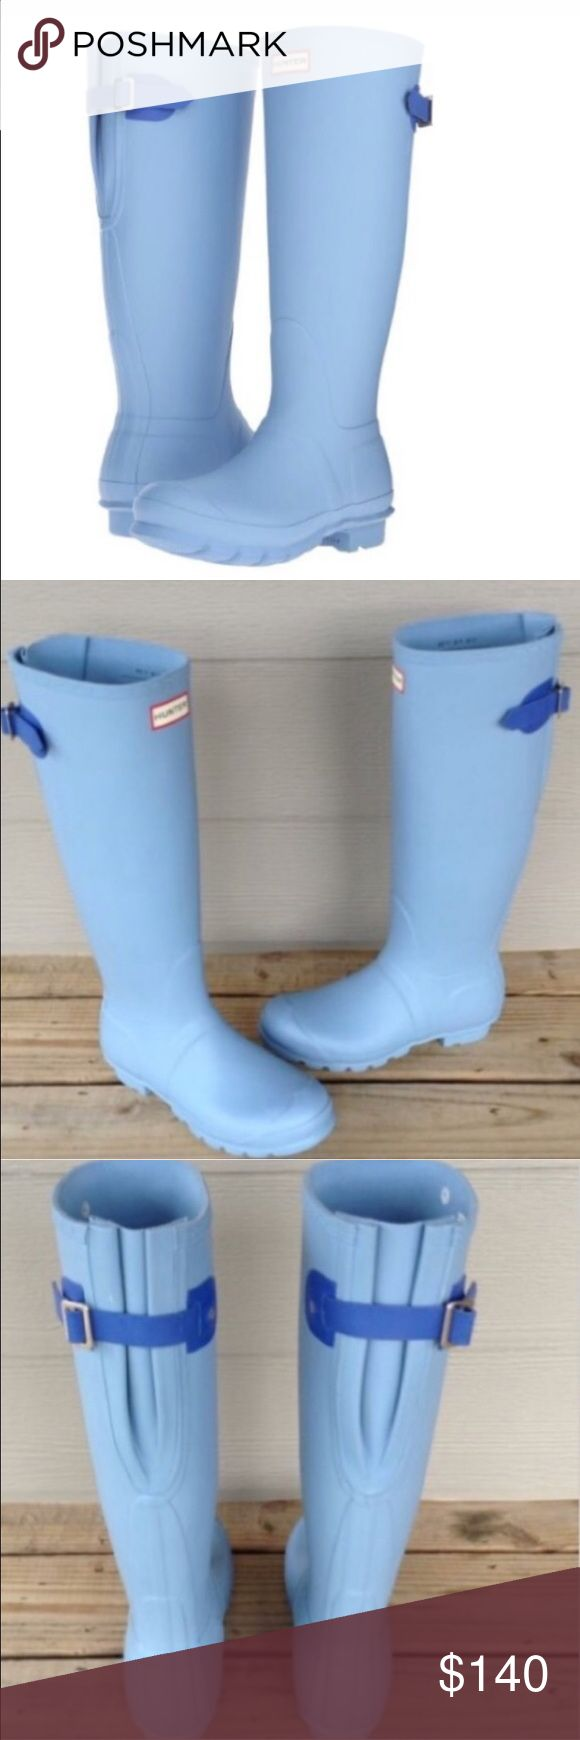 Brand new hunter adjustable rain boots New in box US size 8 Hunter Boots Shoes Winter & Rain Boots